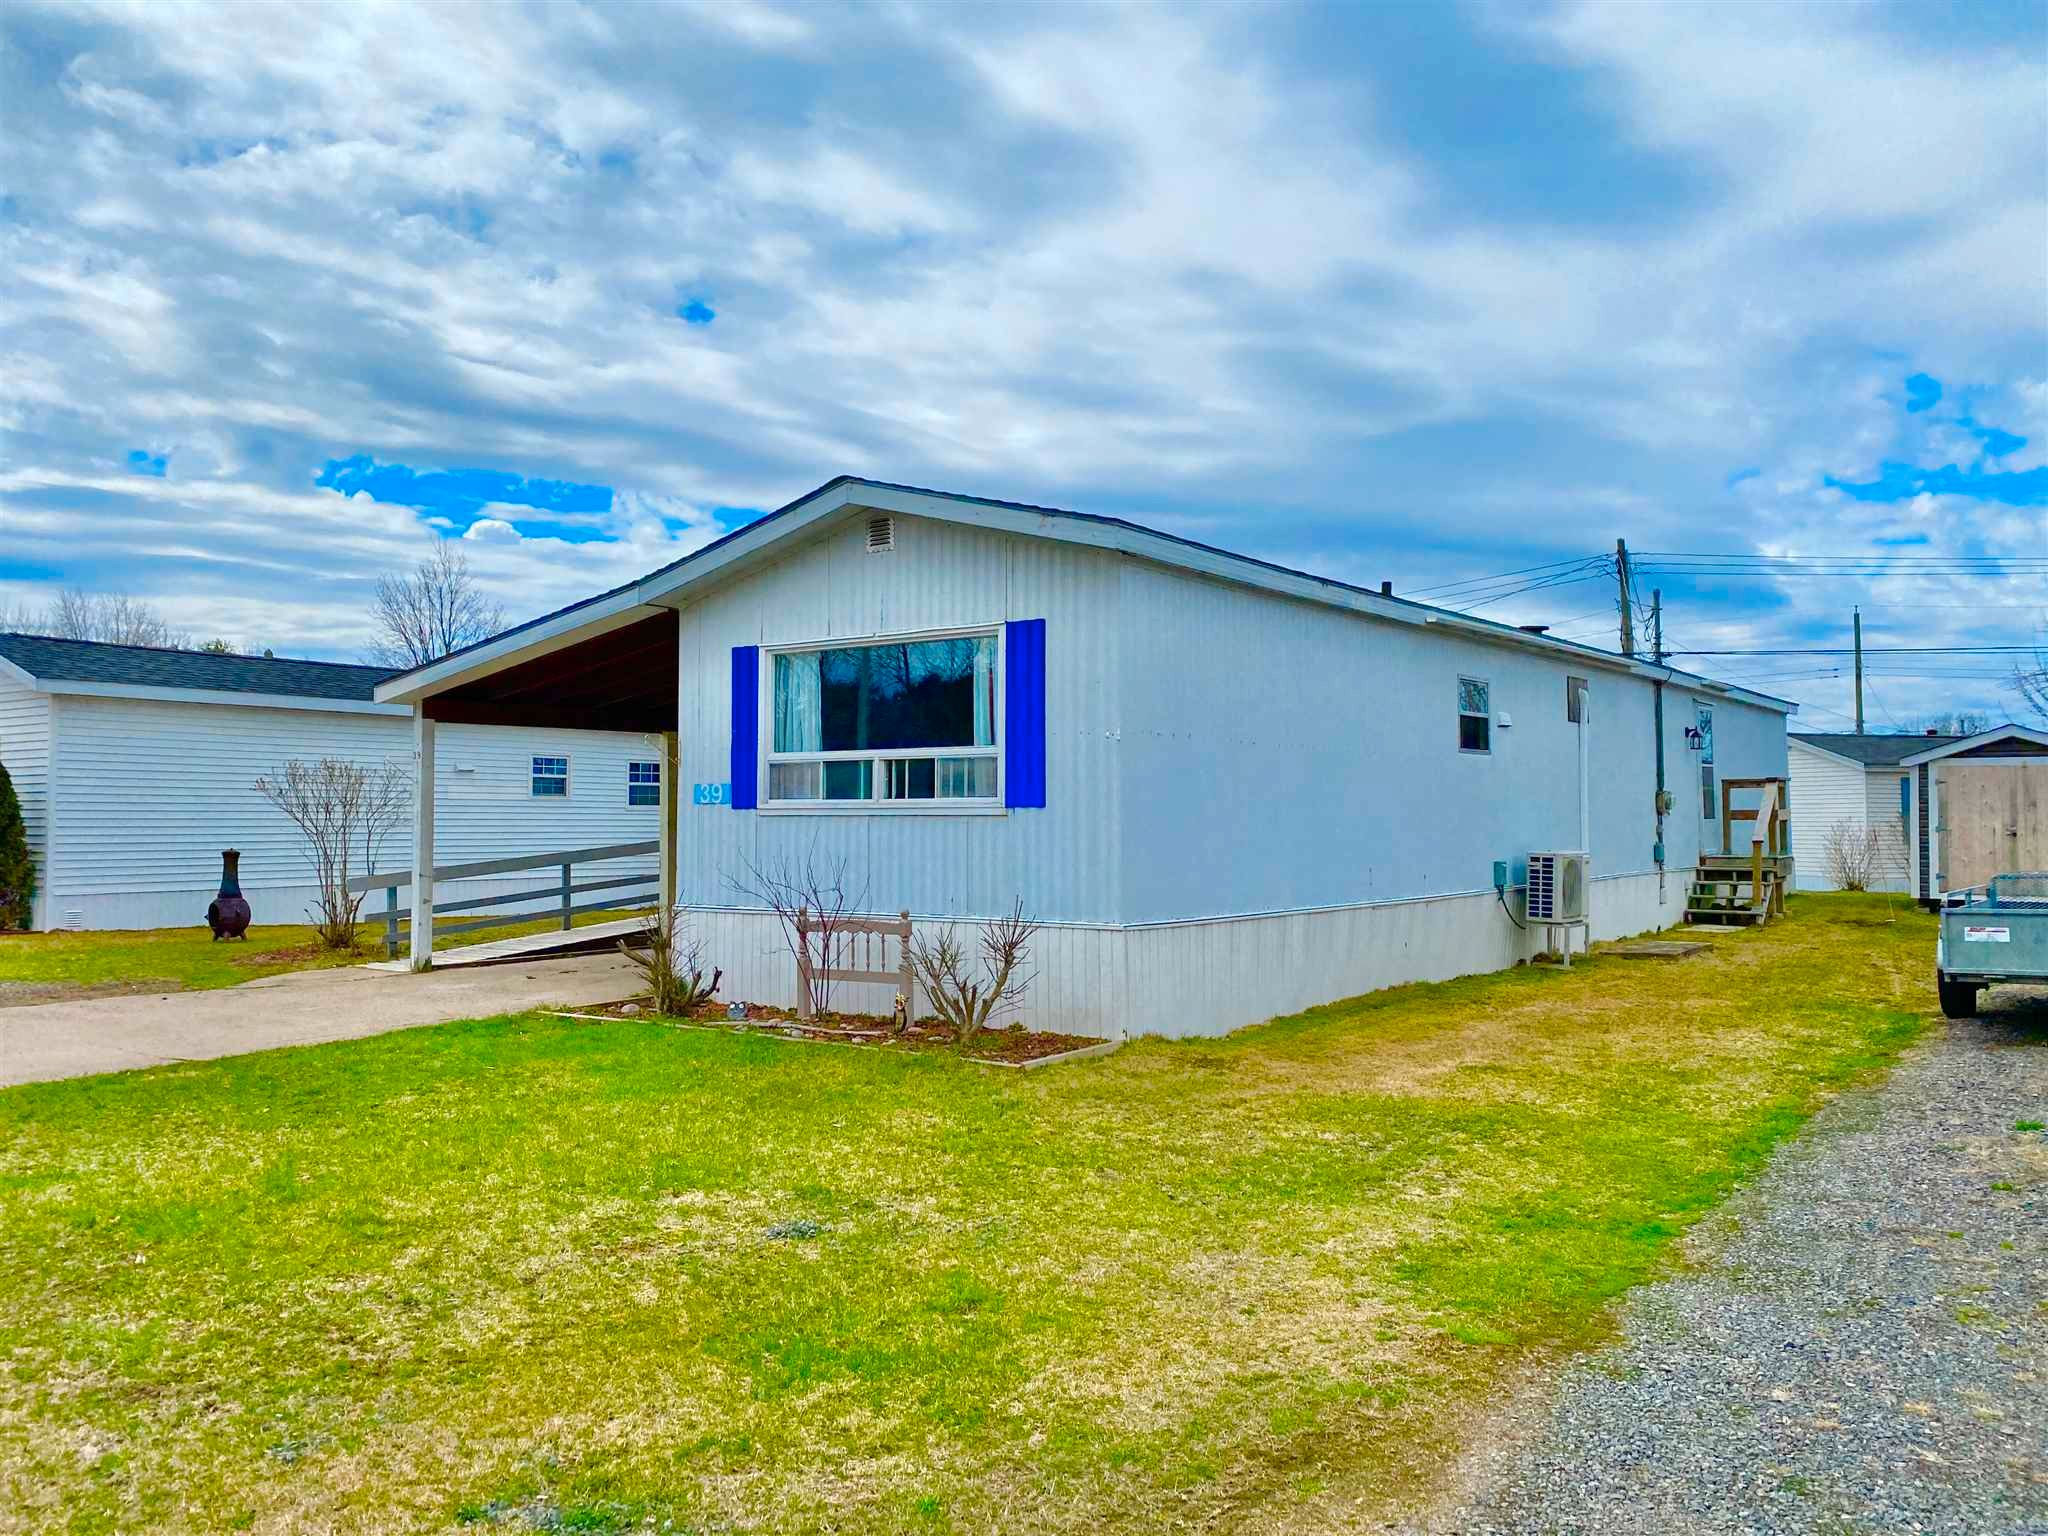 Main Photo: 39 Brown Street in Berwick: 404-Kings County Residential for sale (Annapolis Valley)  : MLS®# 202108117